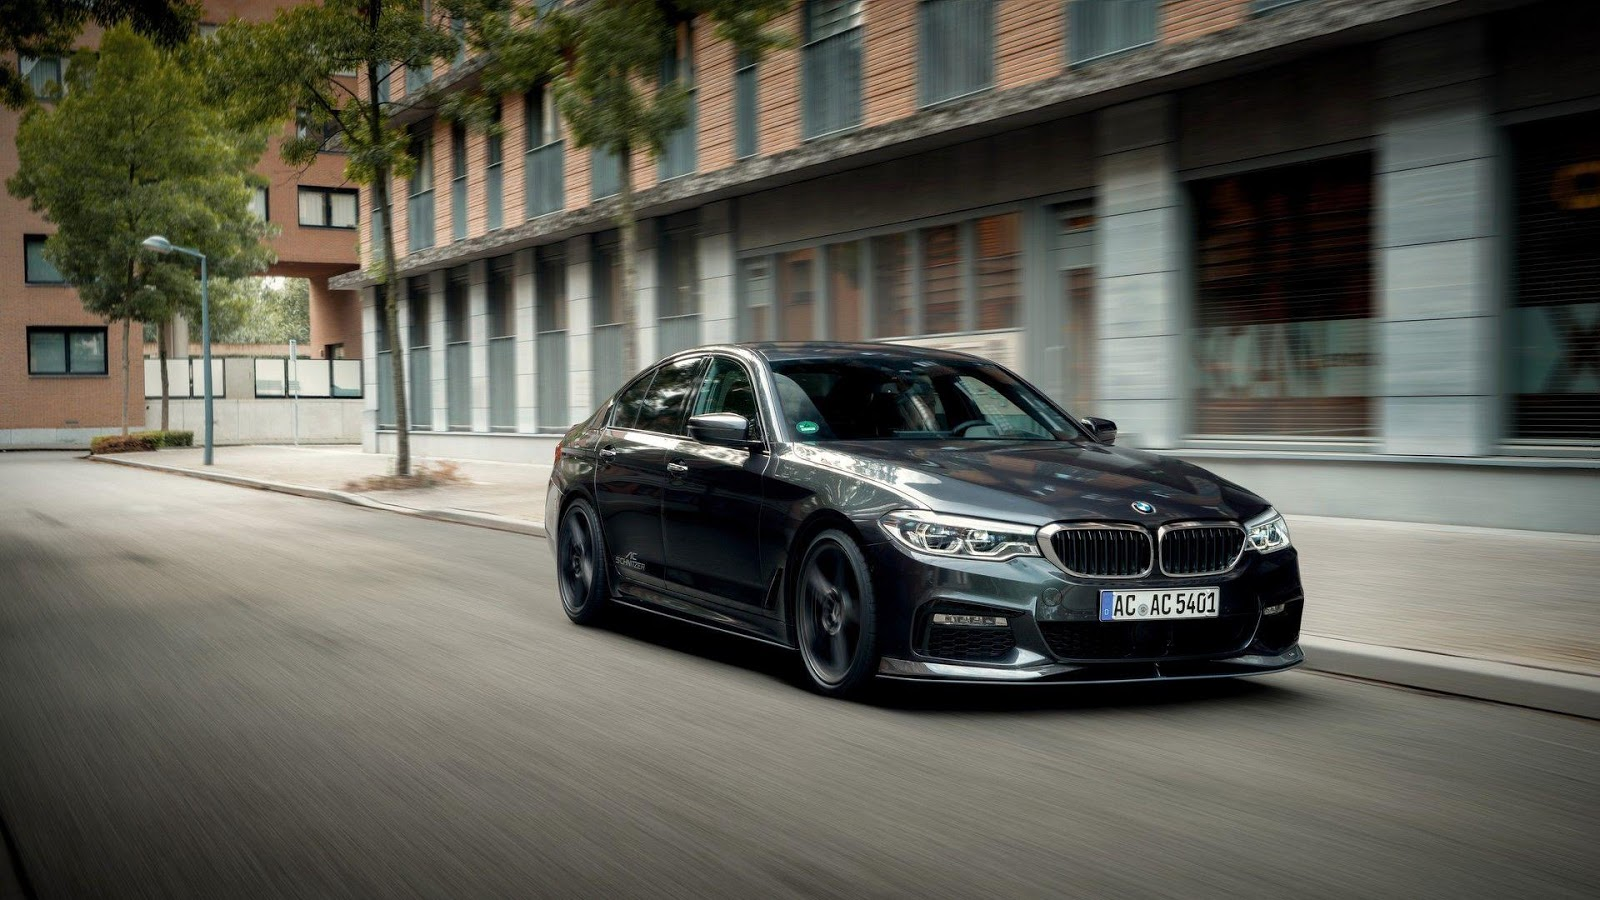 ac schnitzer reveals new bmw 5 series body kit and exhaust. Black Bedroom Furniture Sets. Home Design Ideas